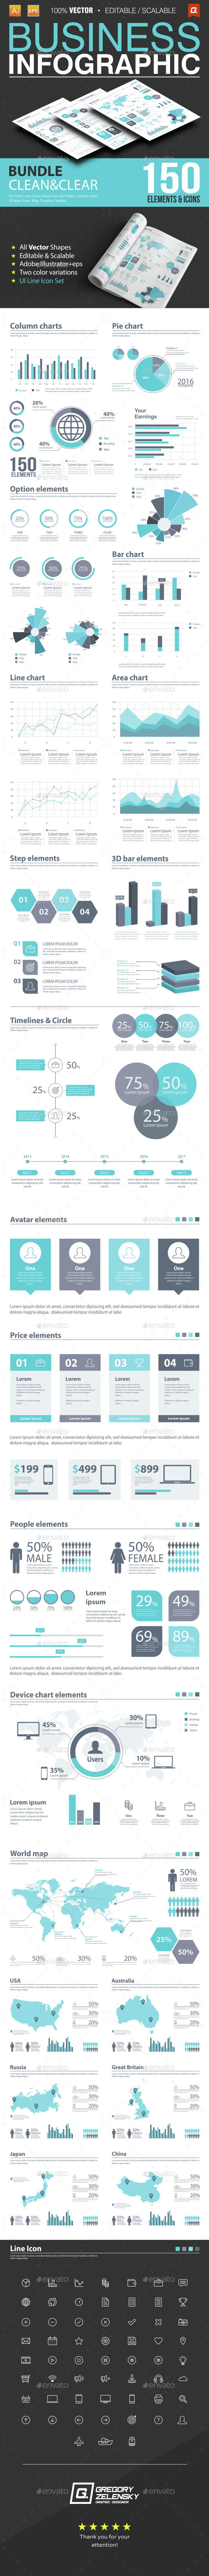 Business Infographic Bundle 150 Elements